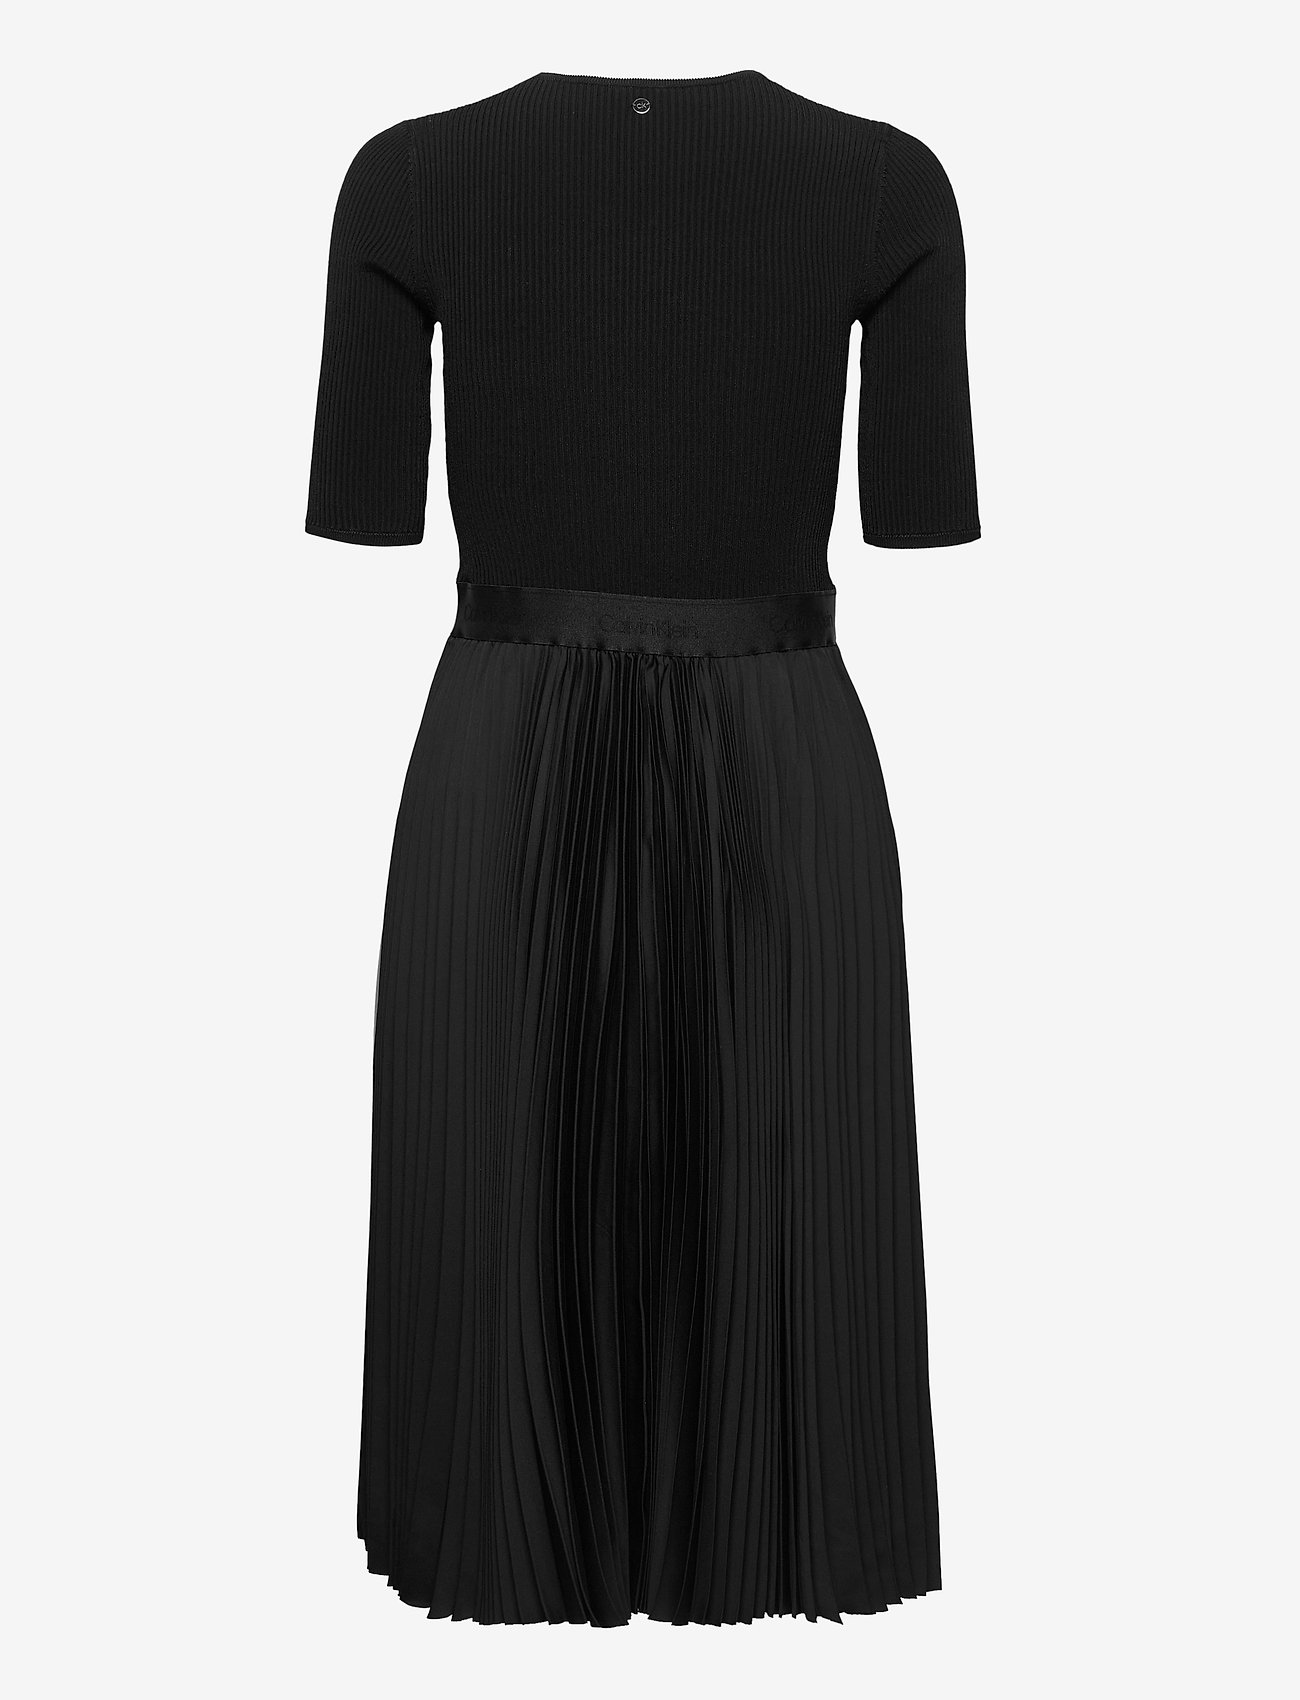 Ns Pleated Skirt Midi Dress (Ck Black) (2600 kr) - Calvin Klein